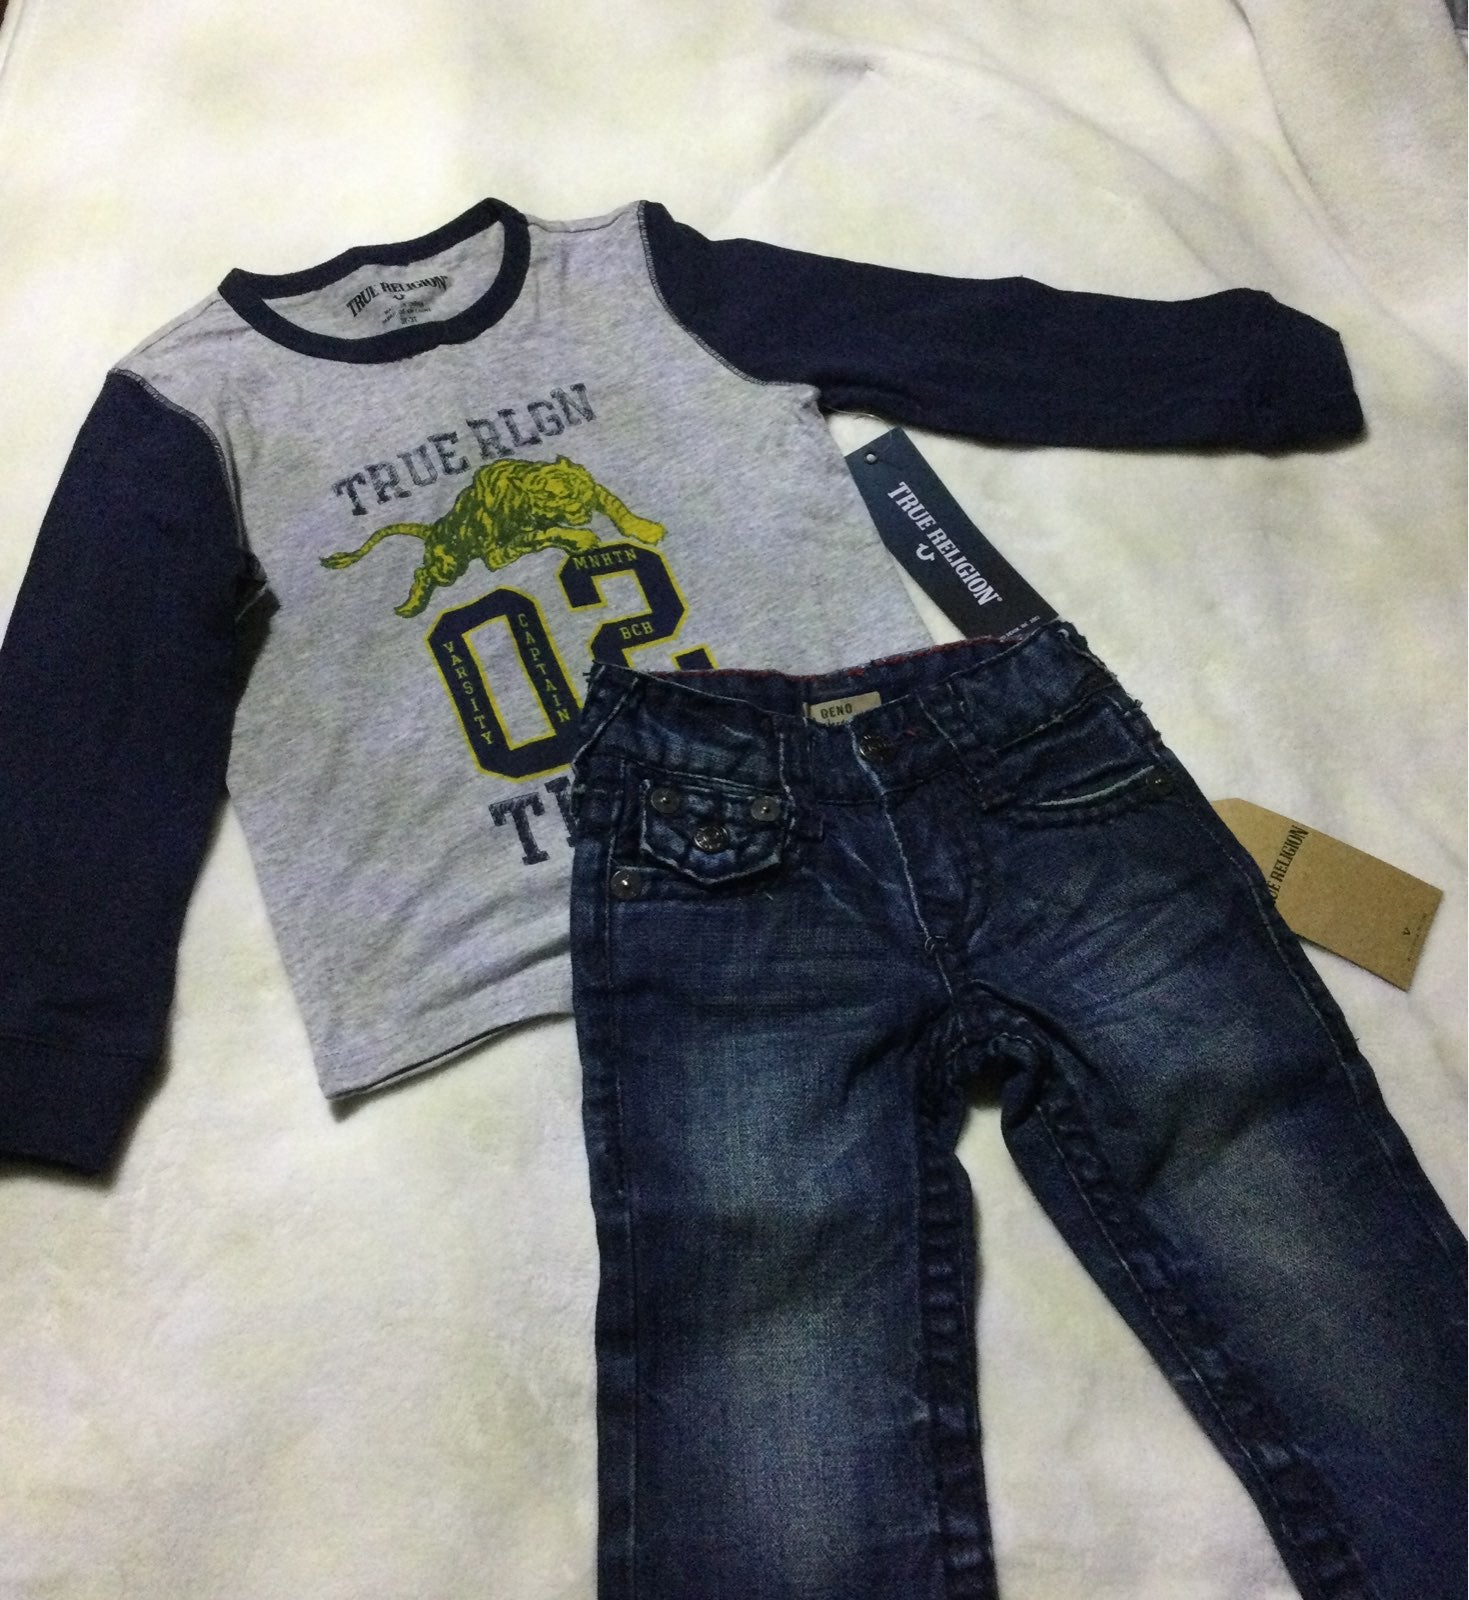 True Religion Toddler Jeans - 2T